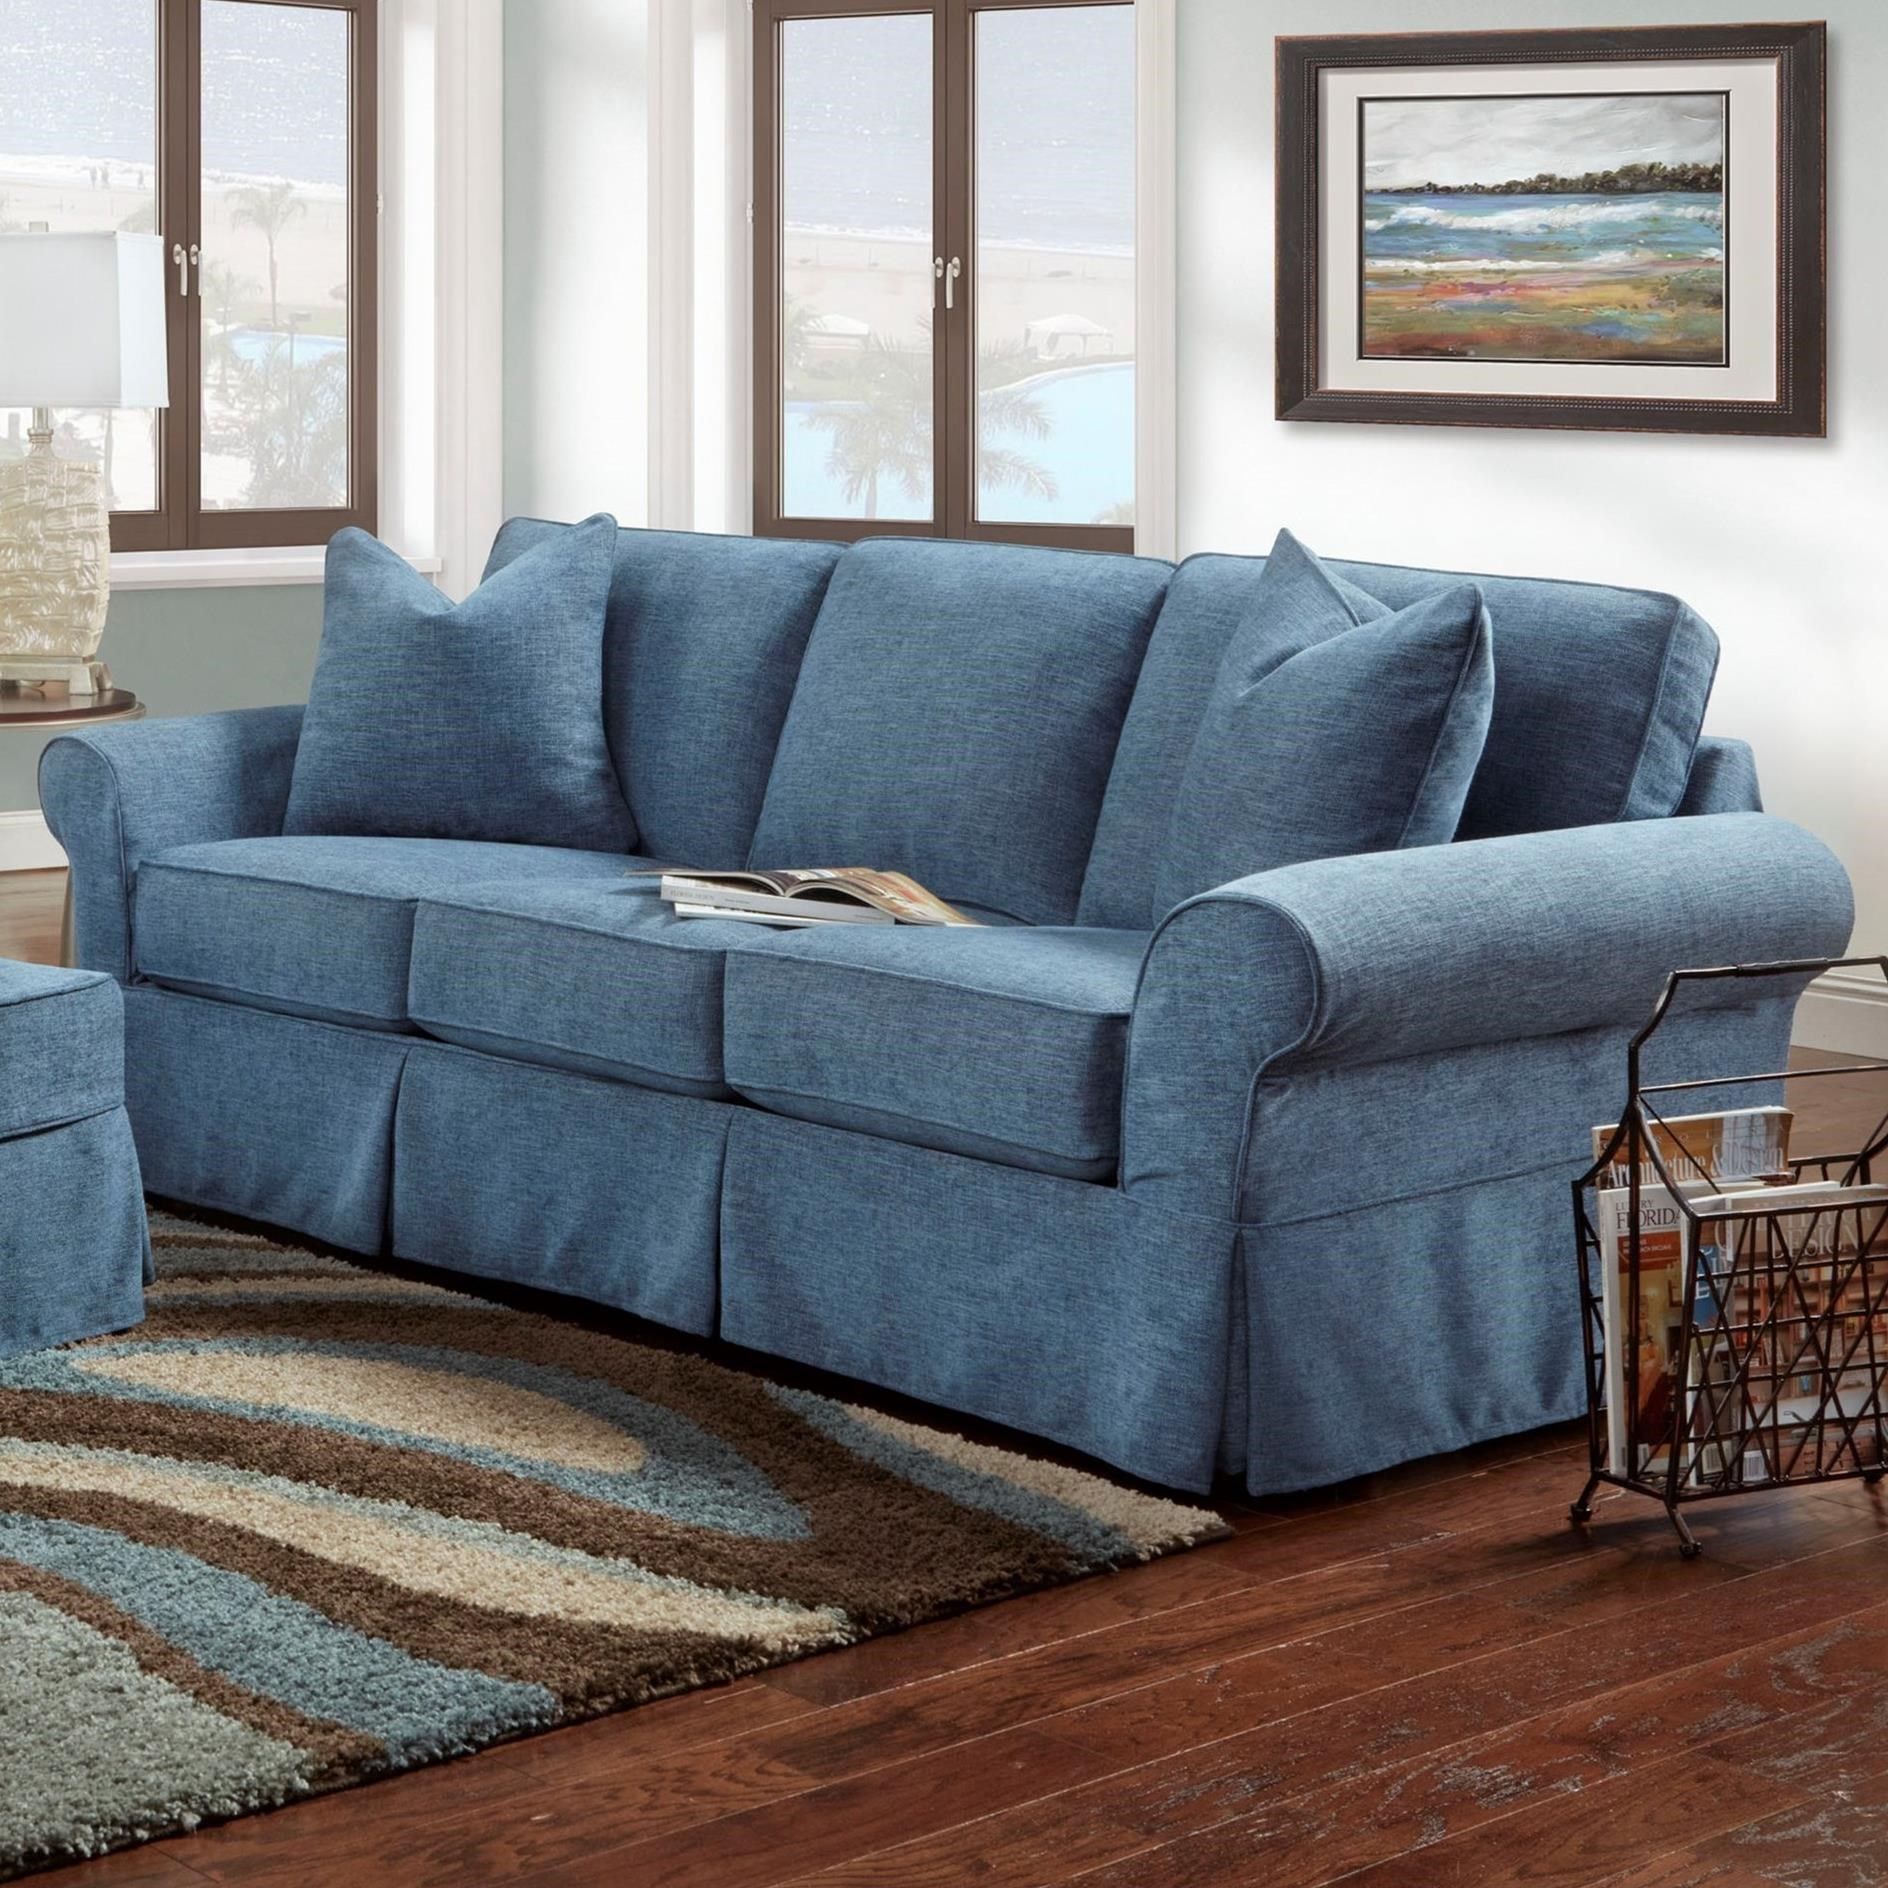 Denim Sofa Bauhaus Ava Sofa With Slipcover Colder S Furniture And Appliance